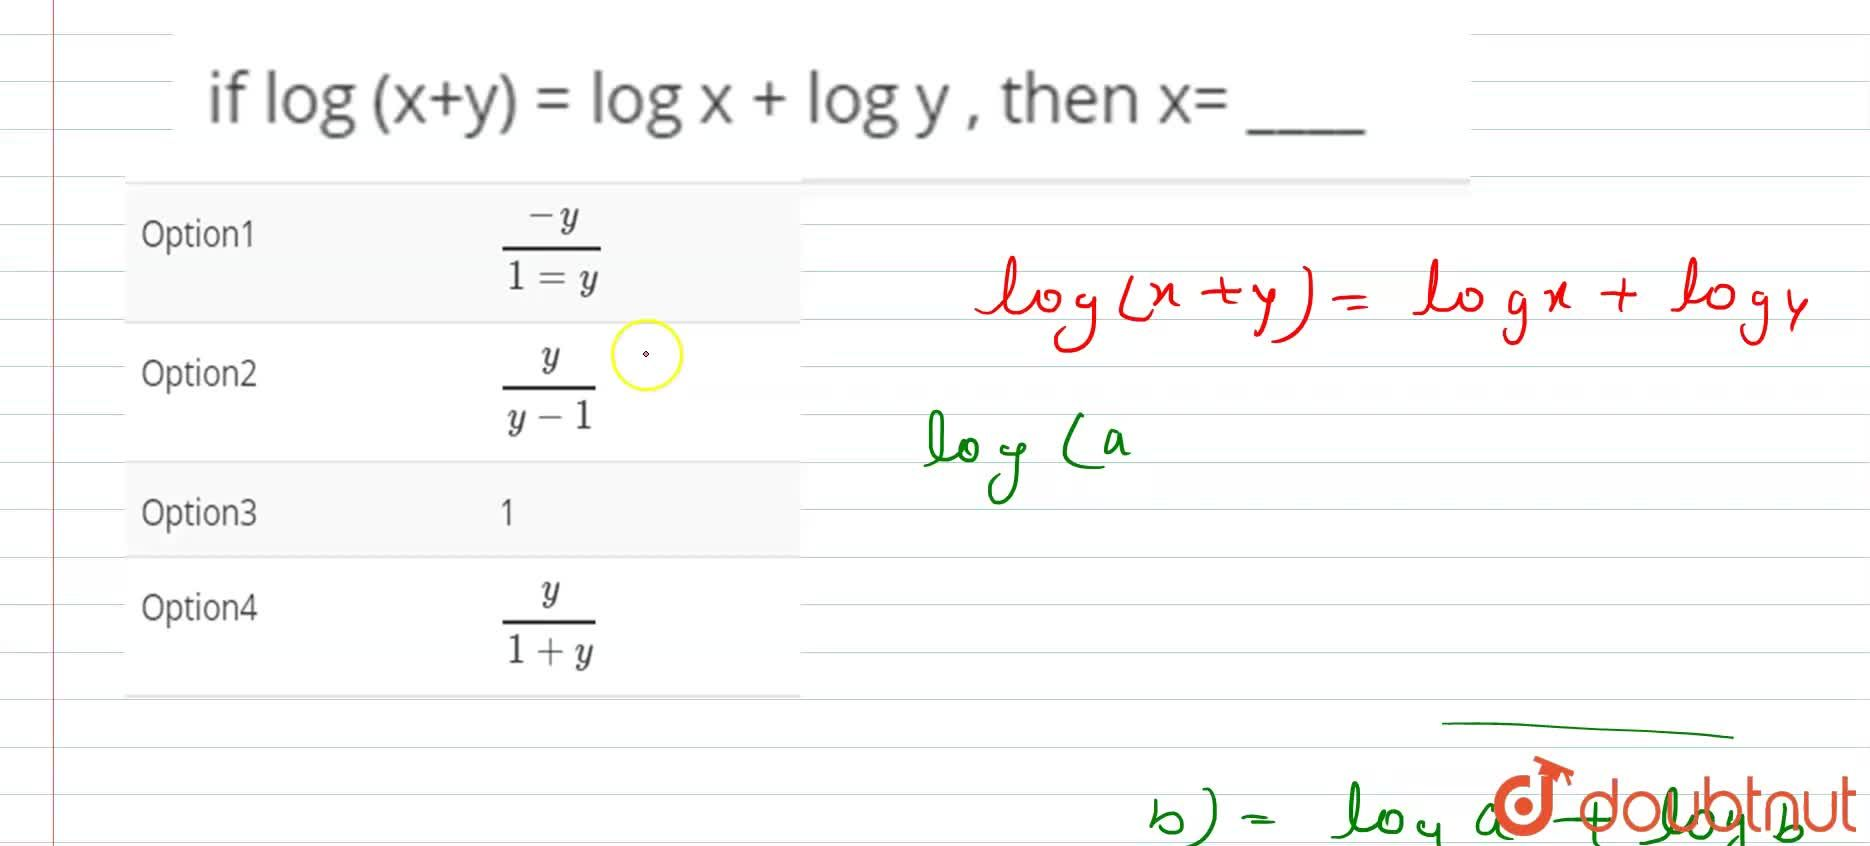 Solution for if log (x+y) = log x + log y , then x= ____